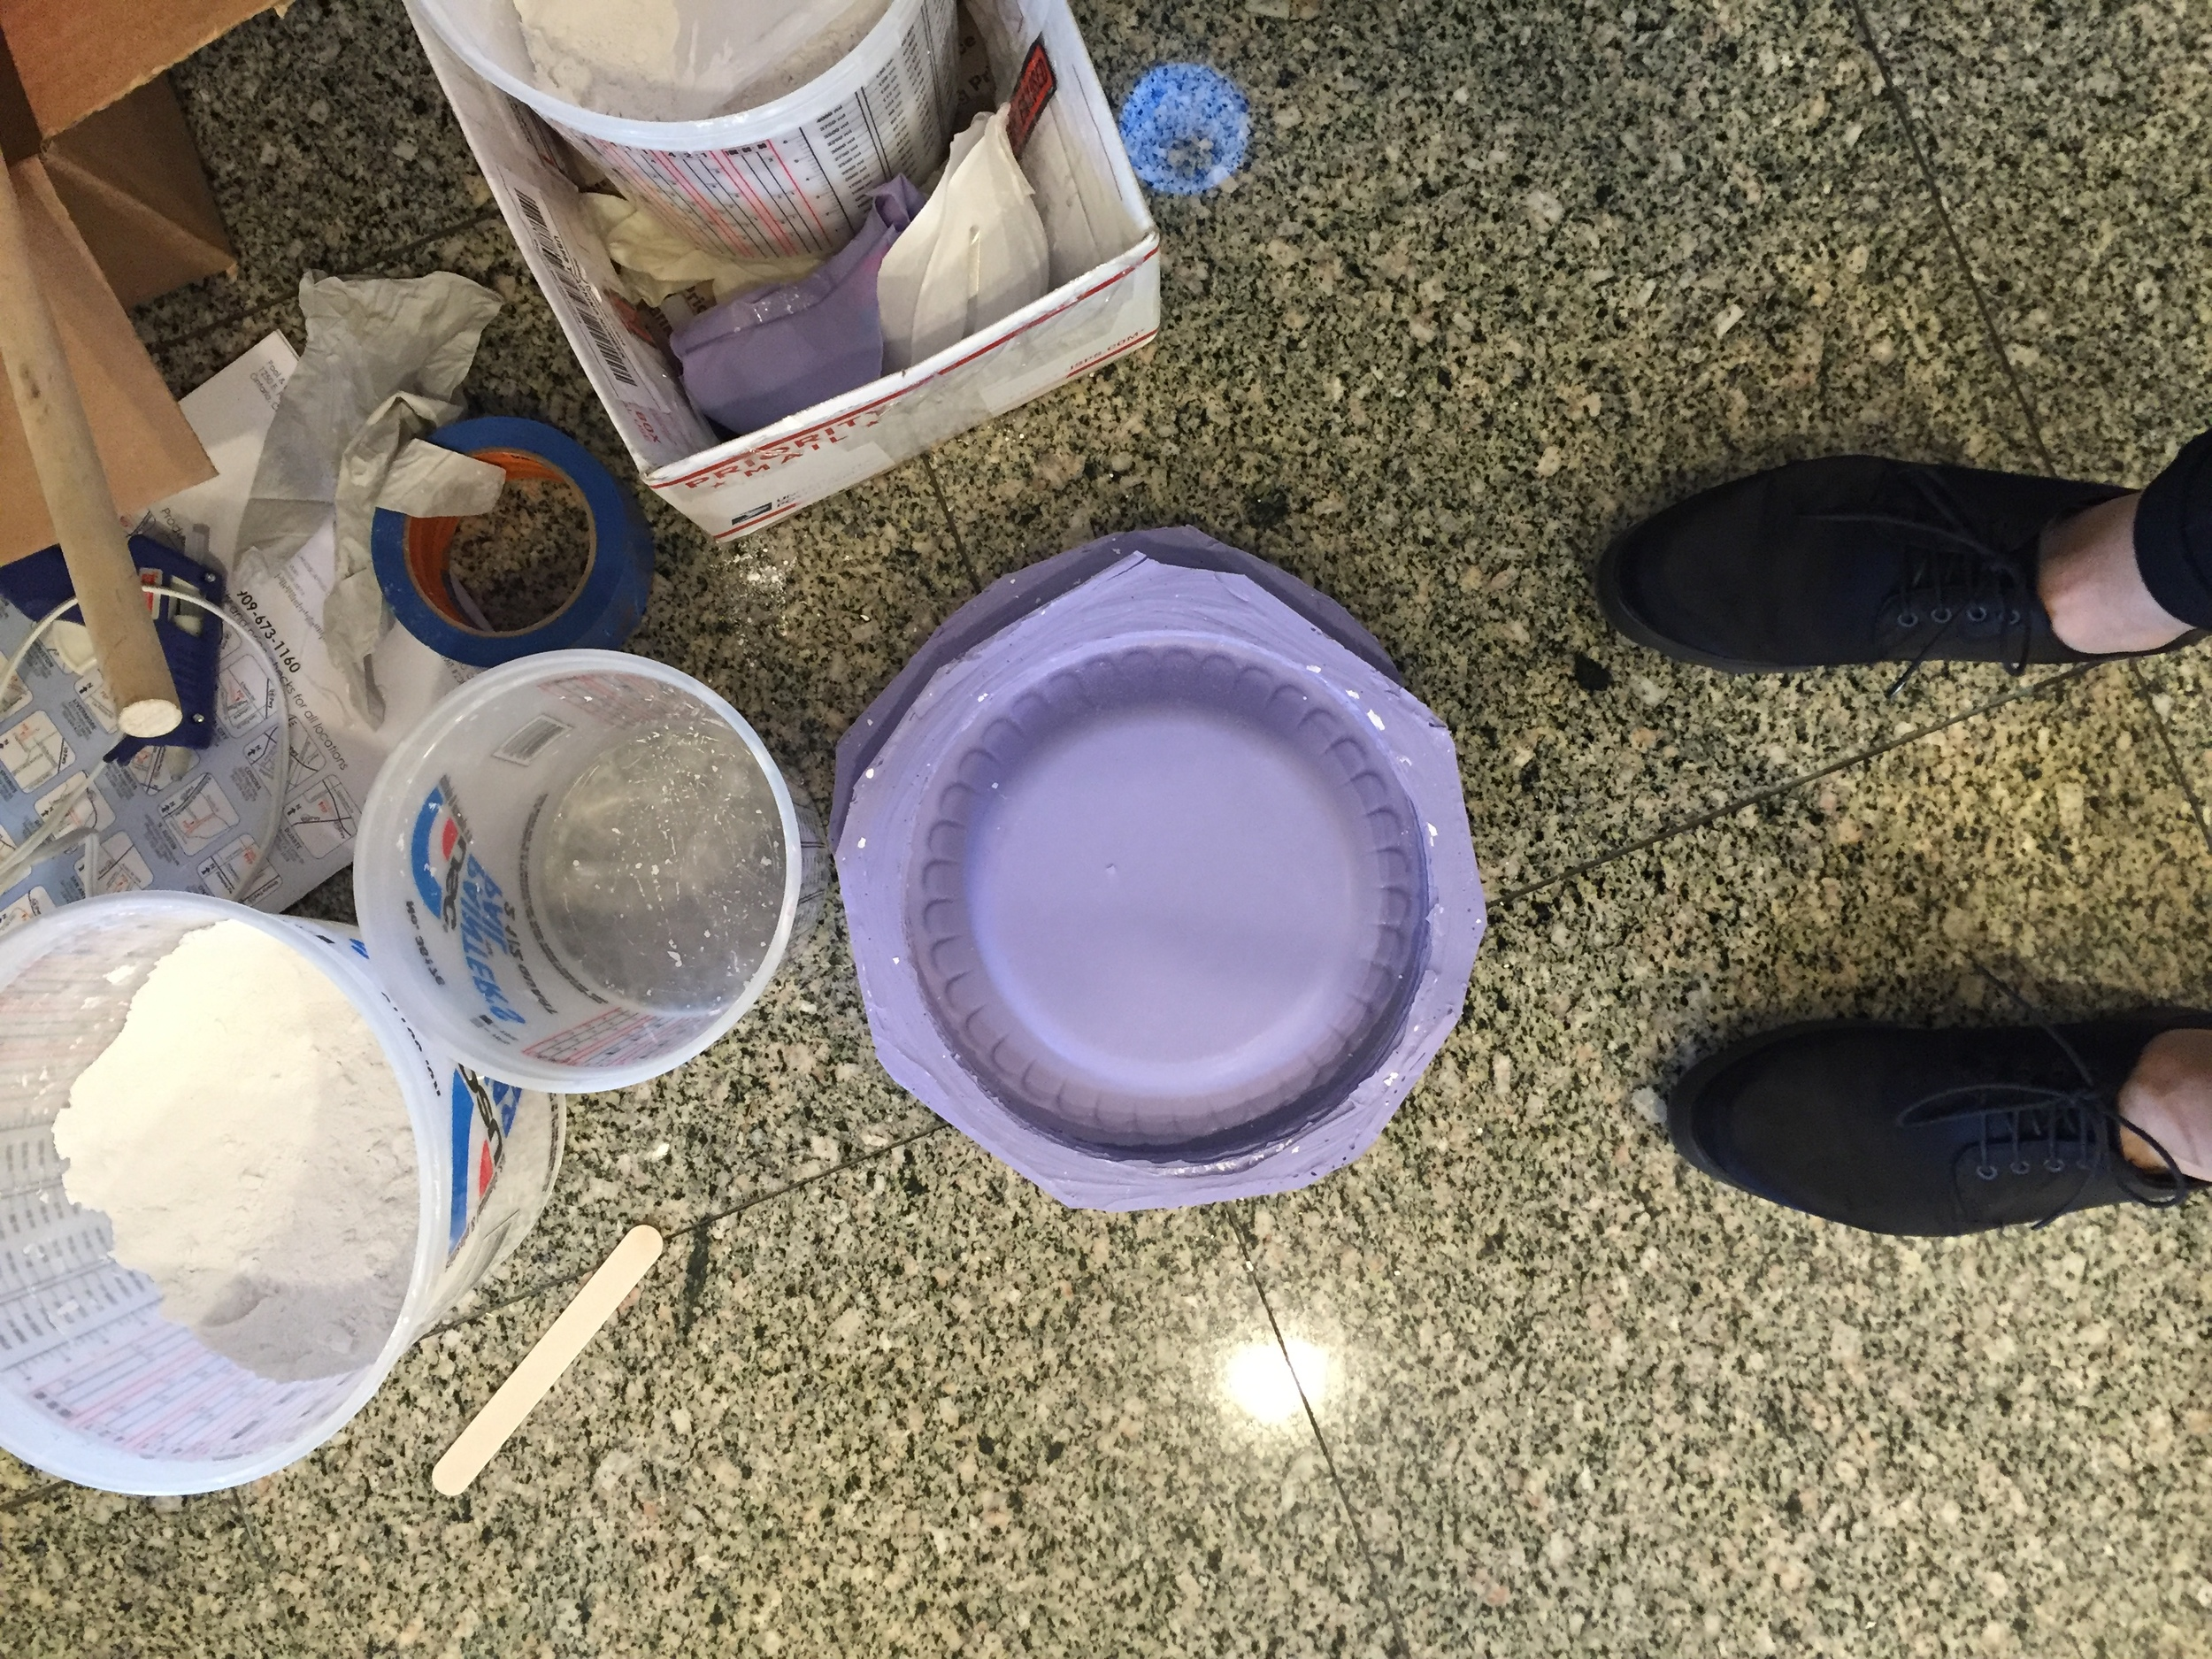 A silicone mold of a stack of paper plates in the making...